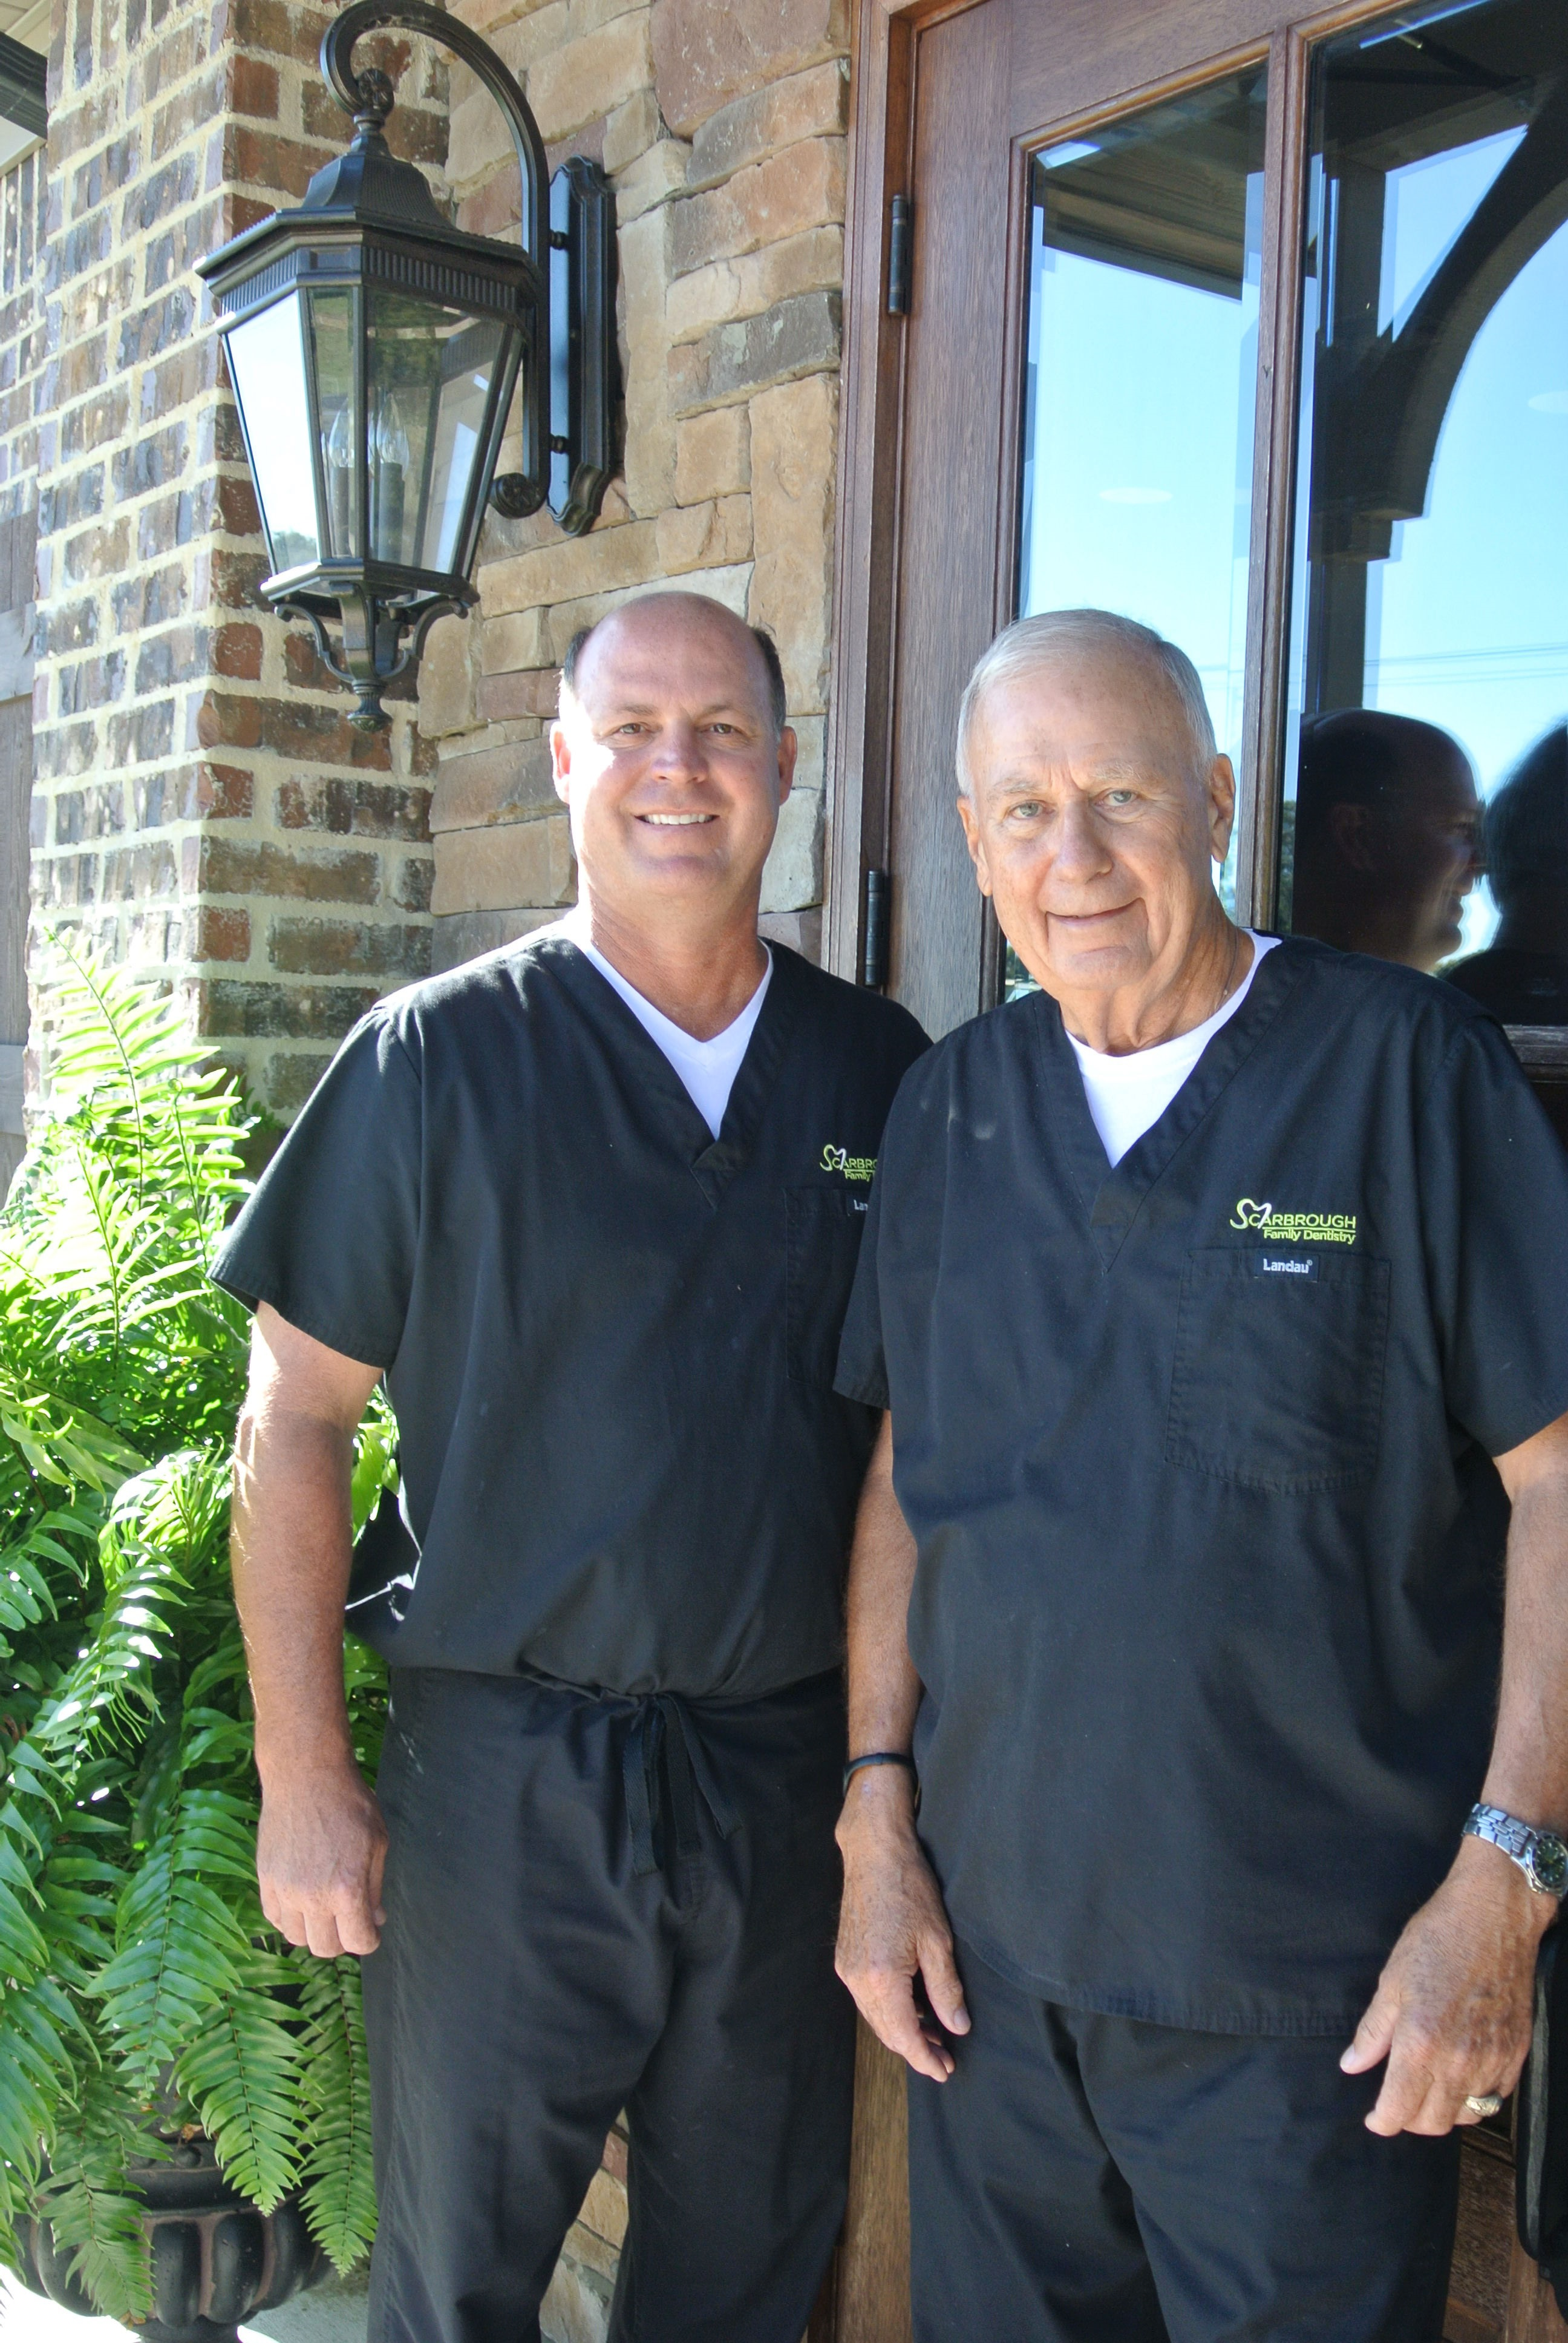 Scarbrough Family Dentistry DDS image 4